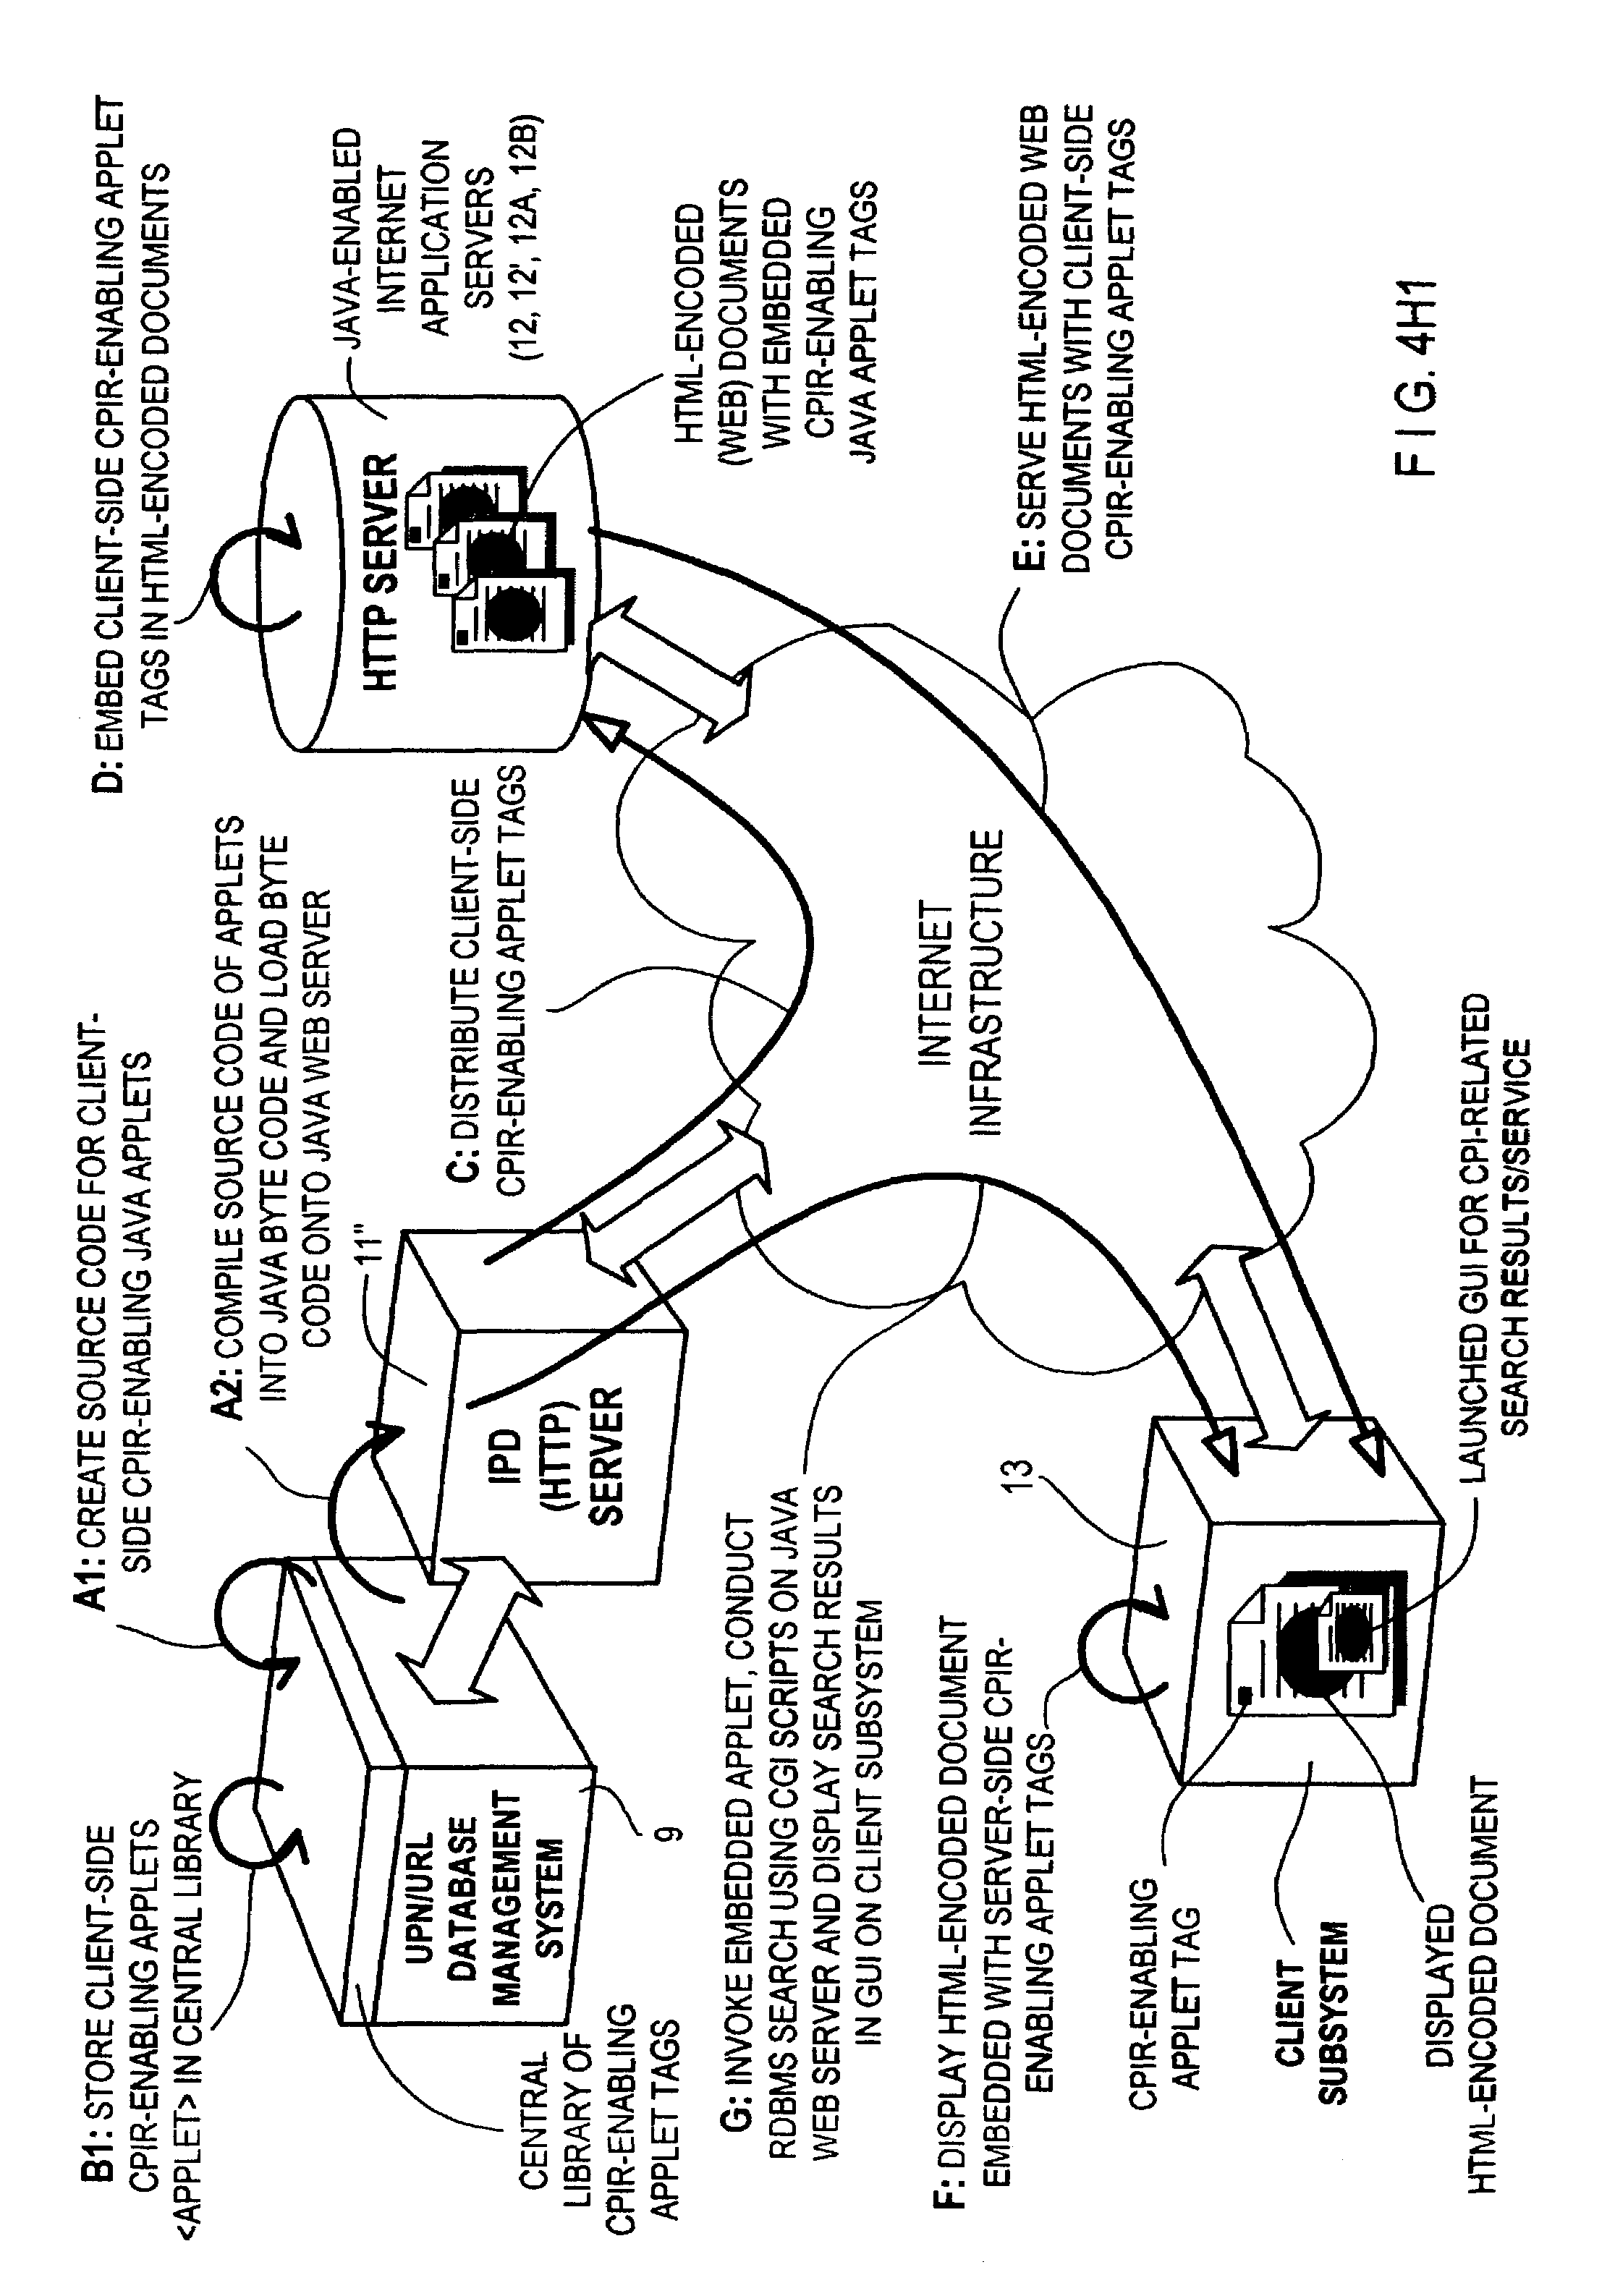 Graphical Authoring Environment For Creating Vehicle Wiring Diagrams